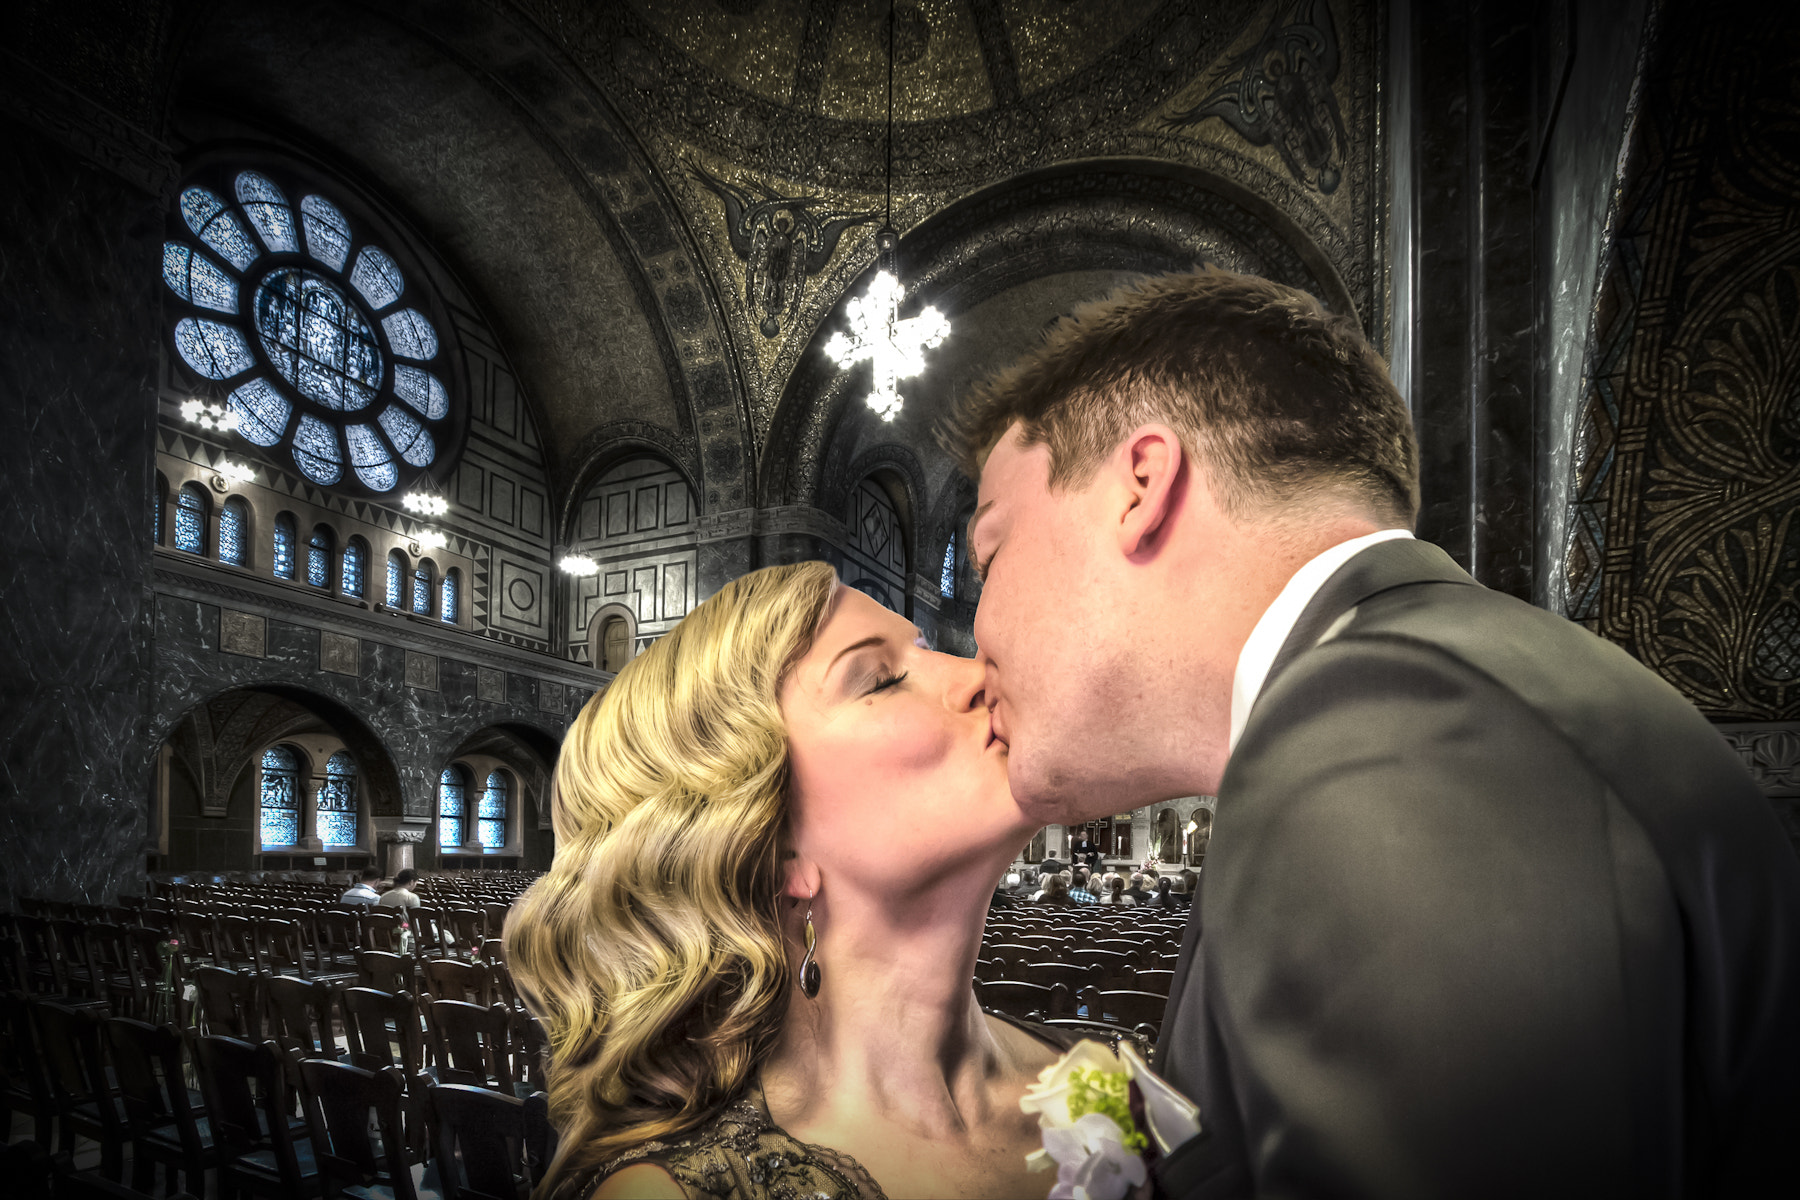 Photograph sparkling wedding spirit by Christian Wolf on 500px